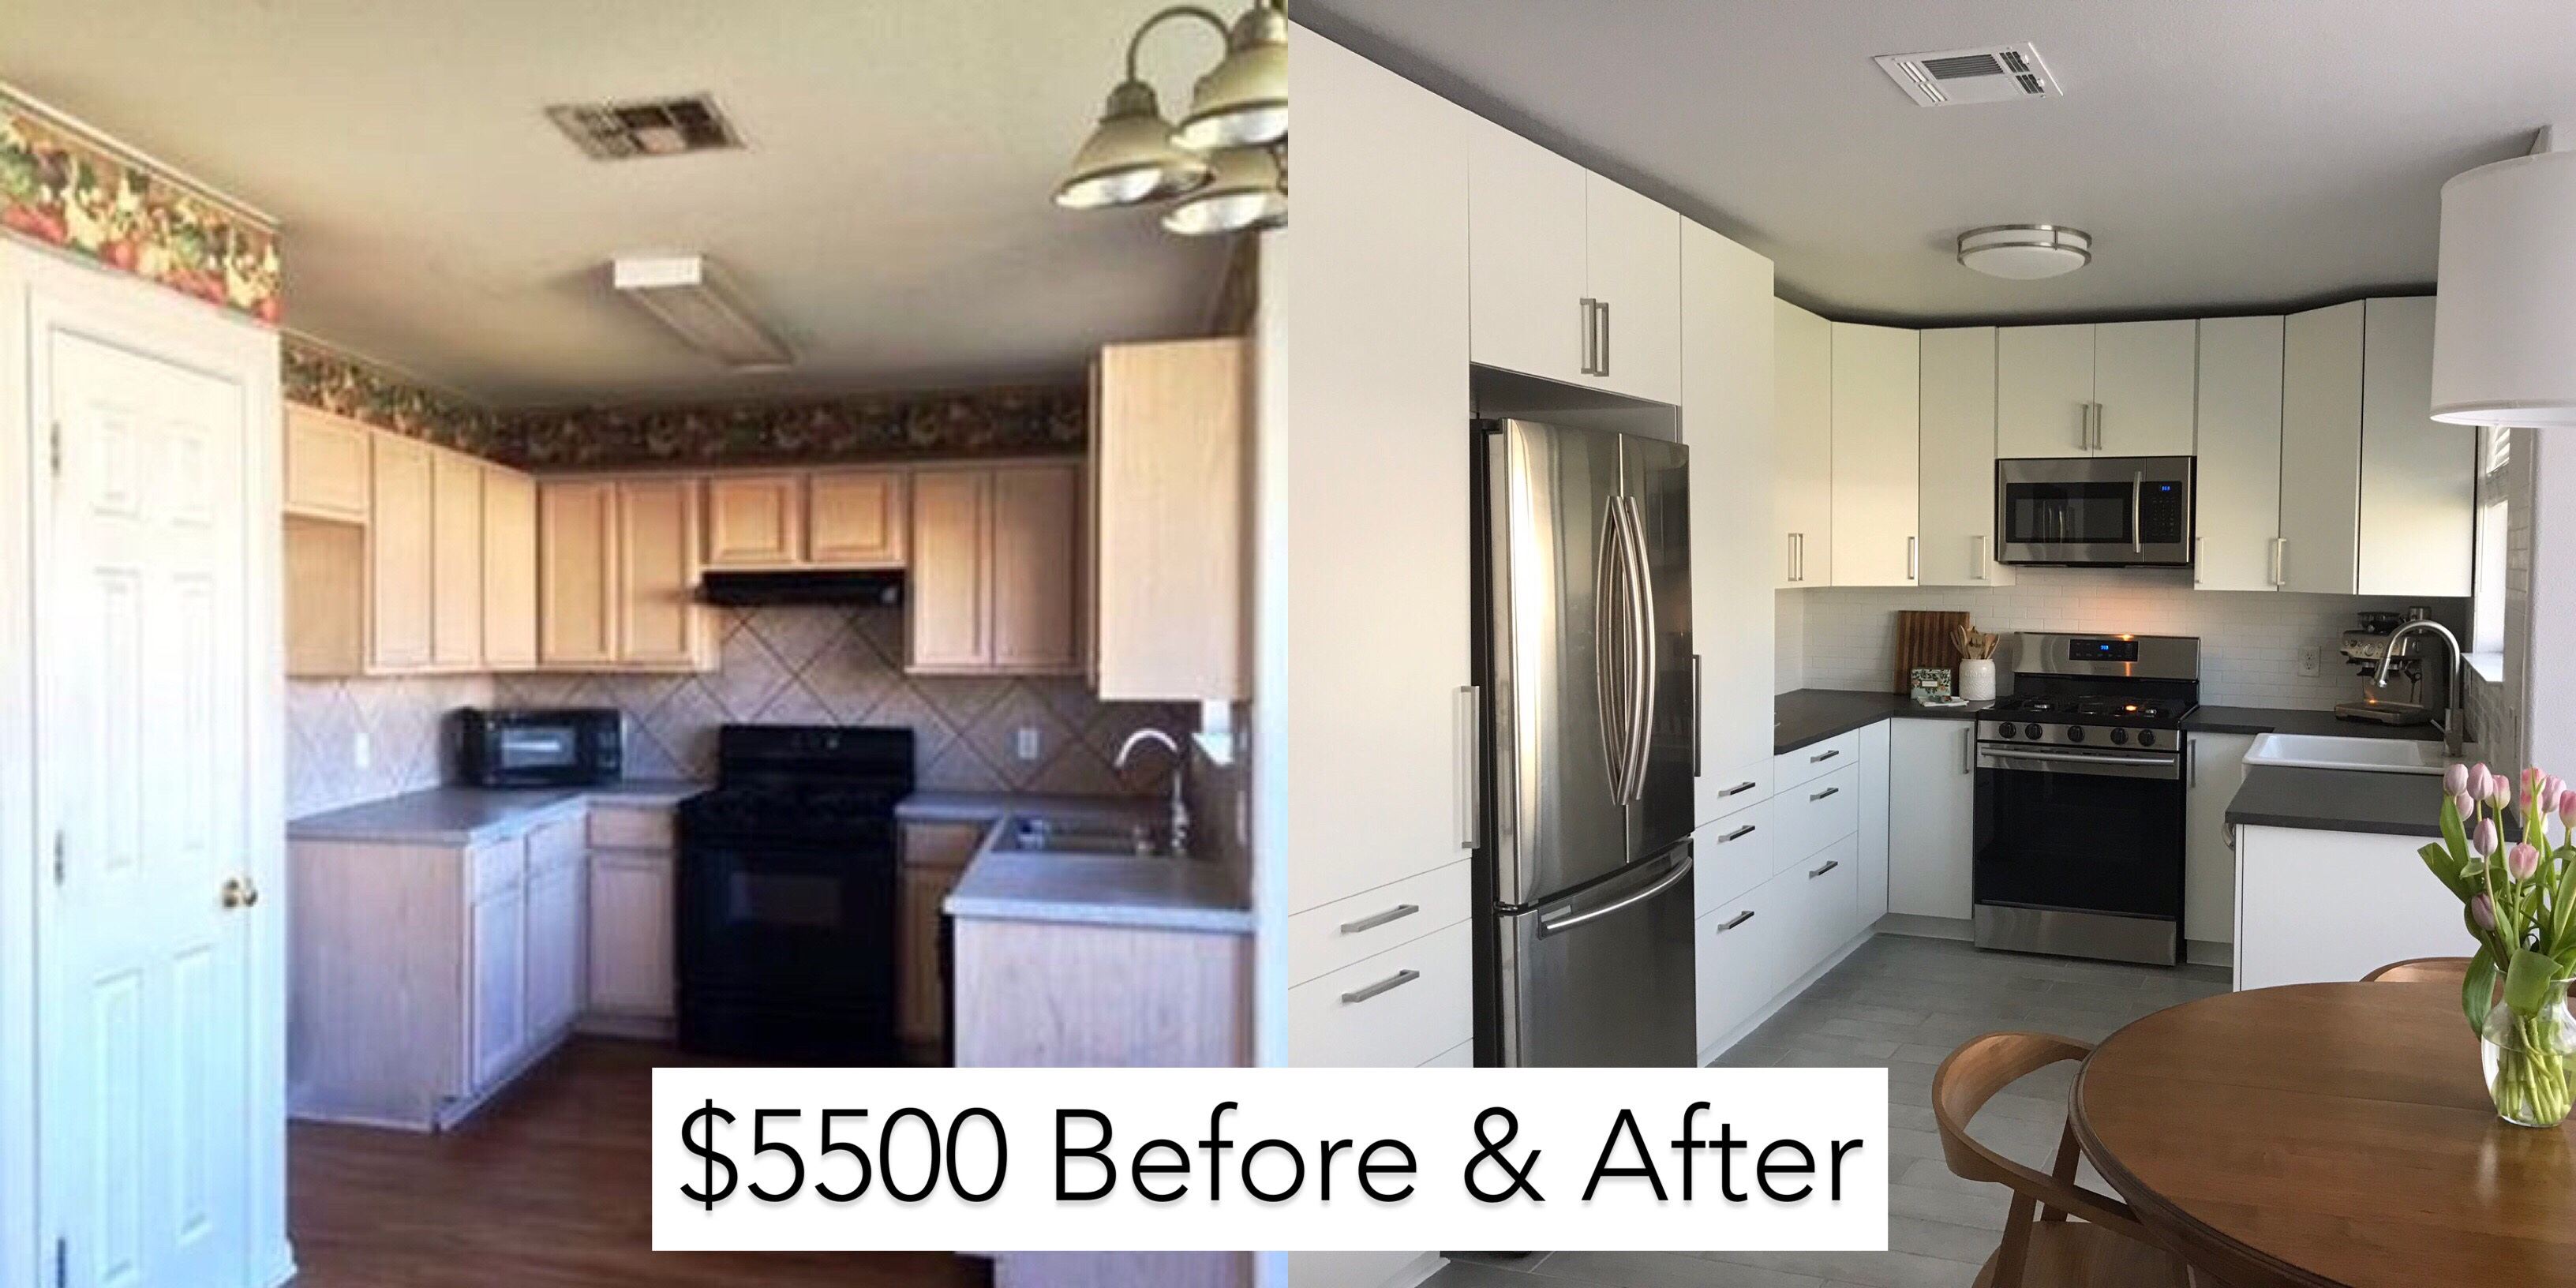 Total Kitchen Renovation Cost